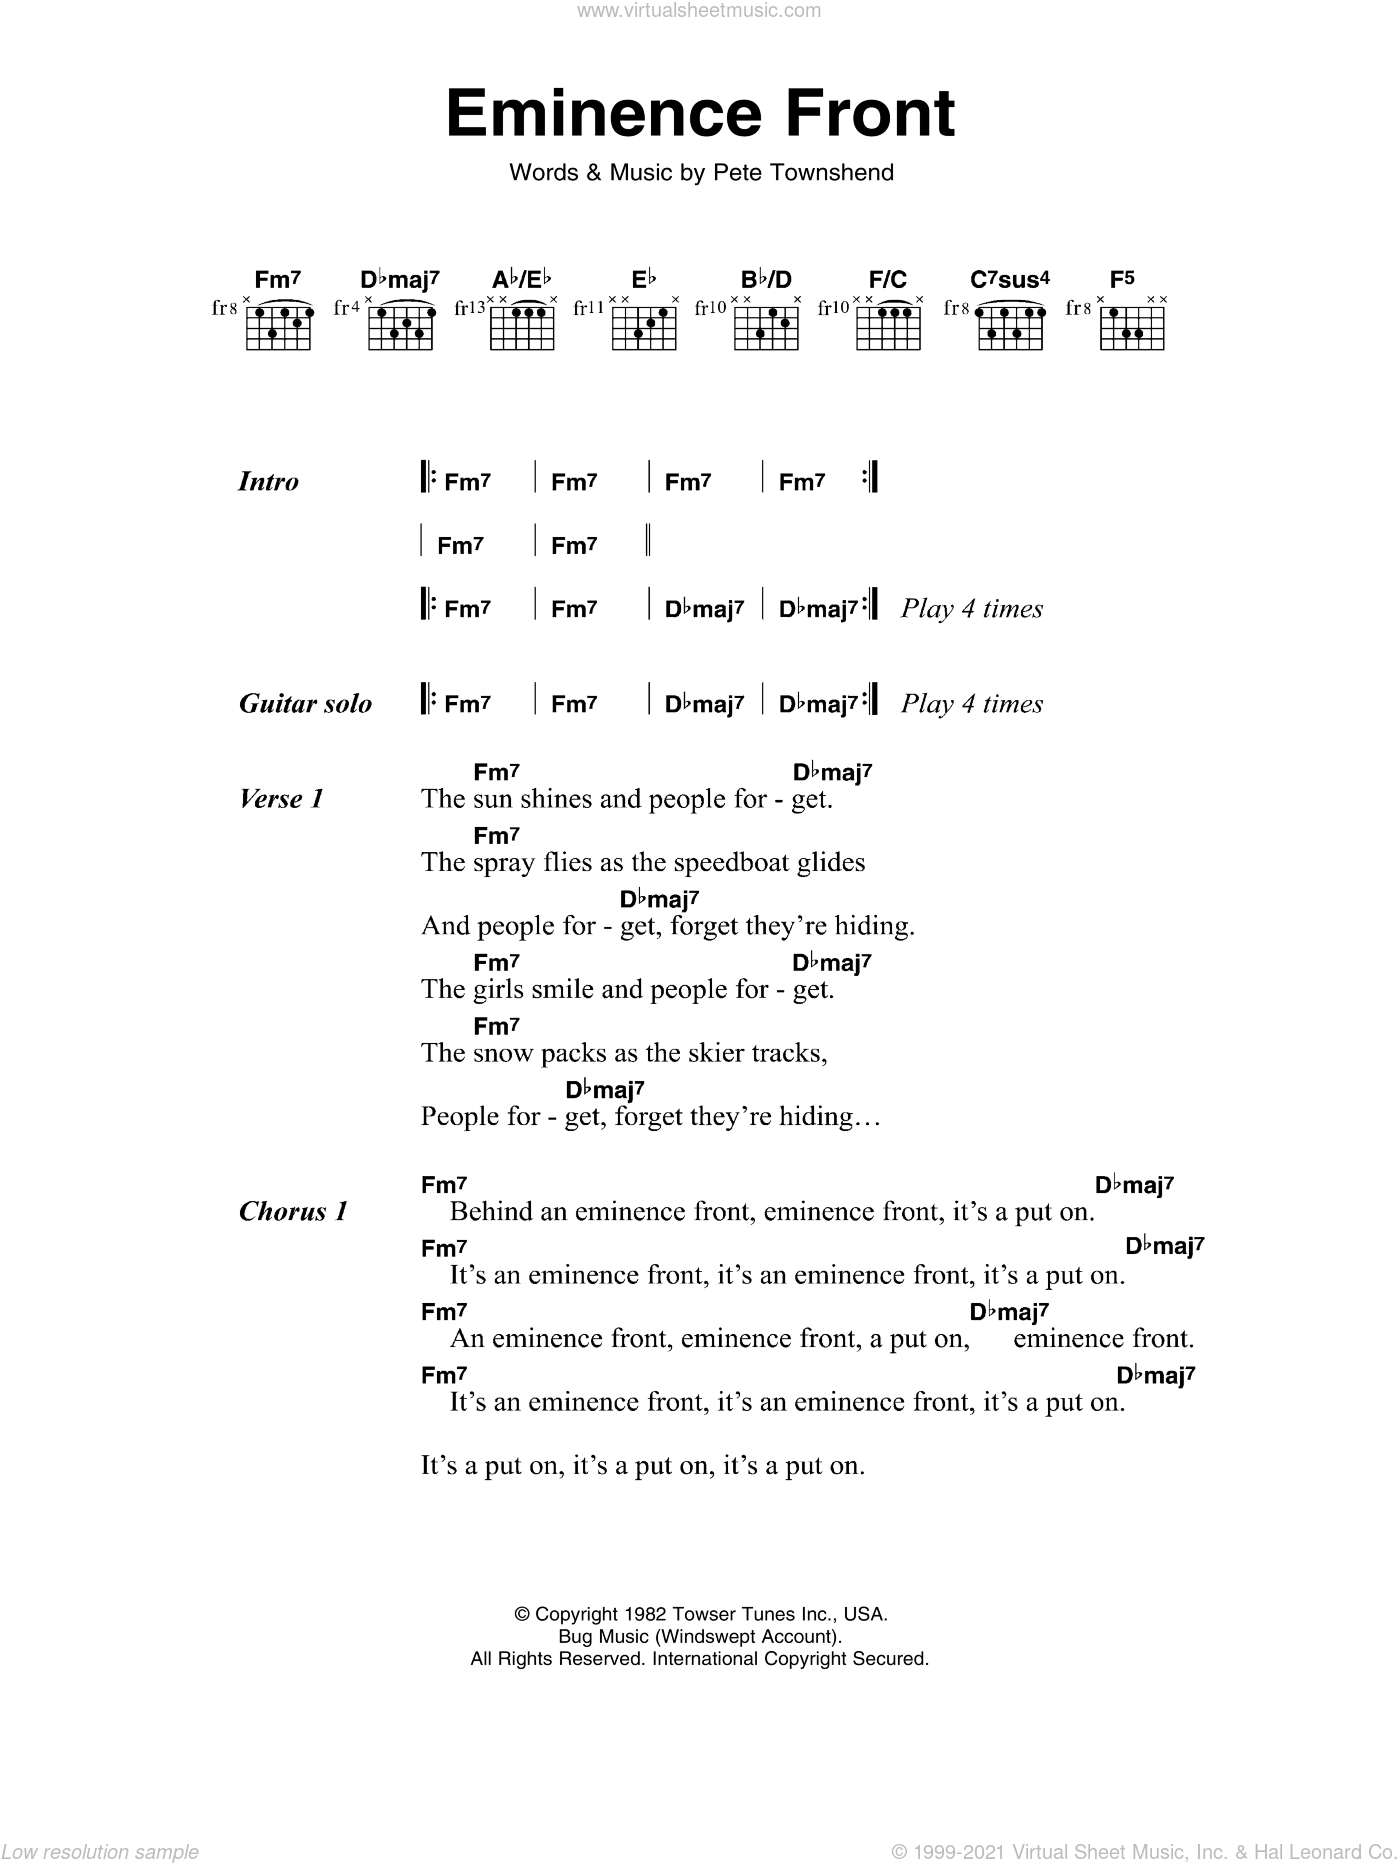 Eminence Front sheet music for guitar (chords) by The Who and Pete Townshend, intermediate skill level